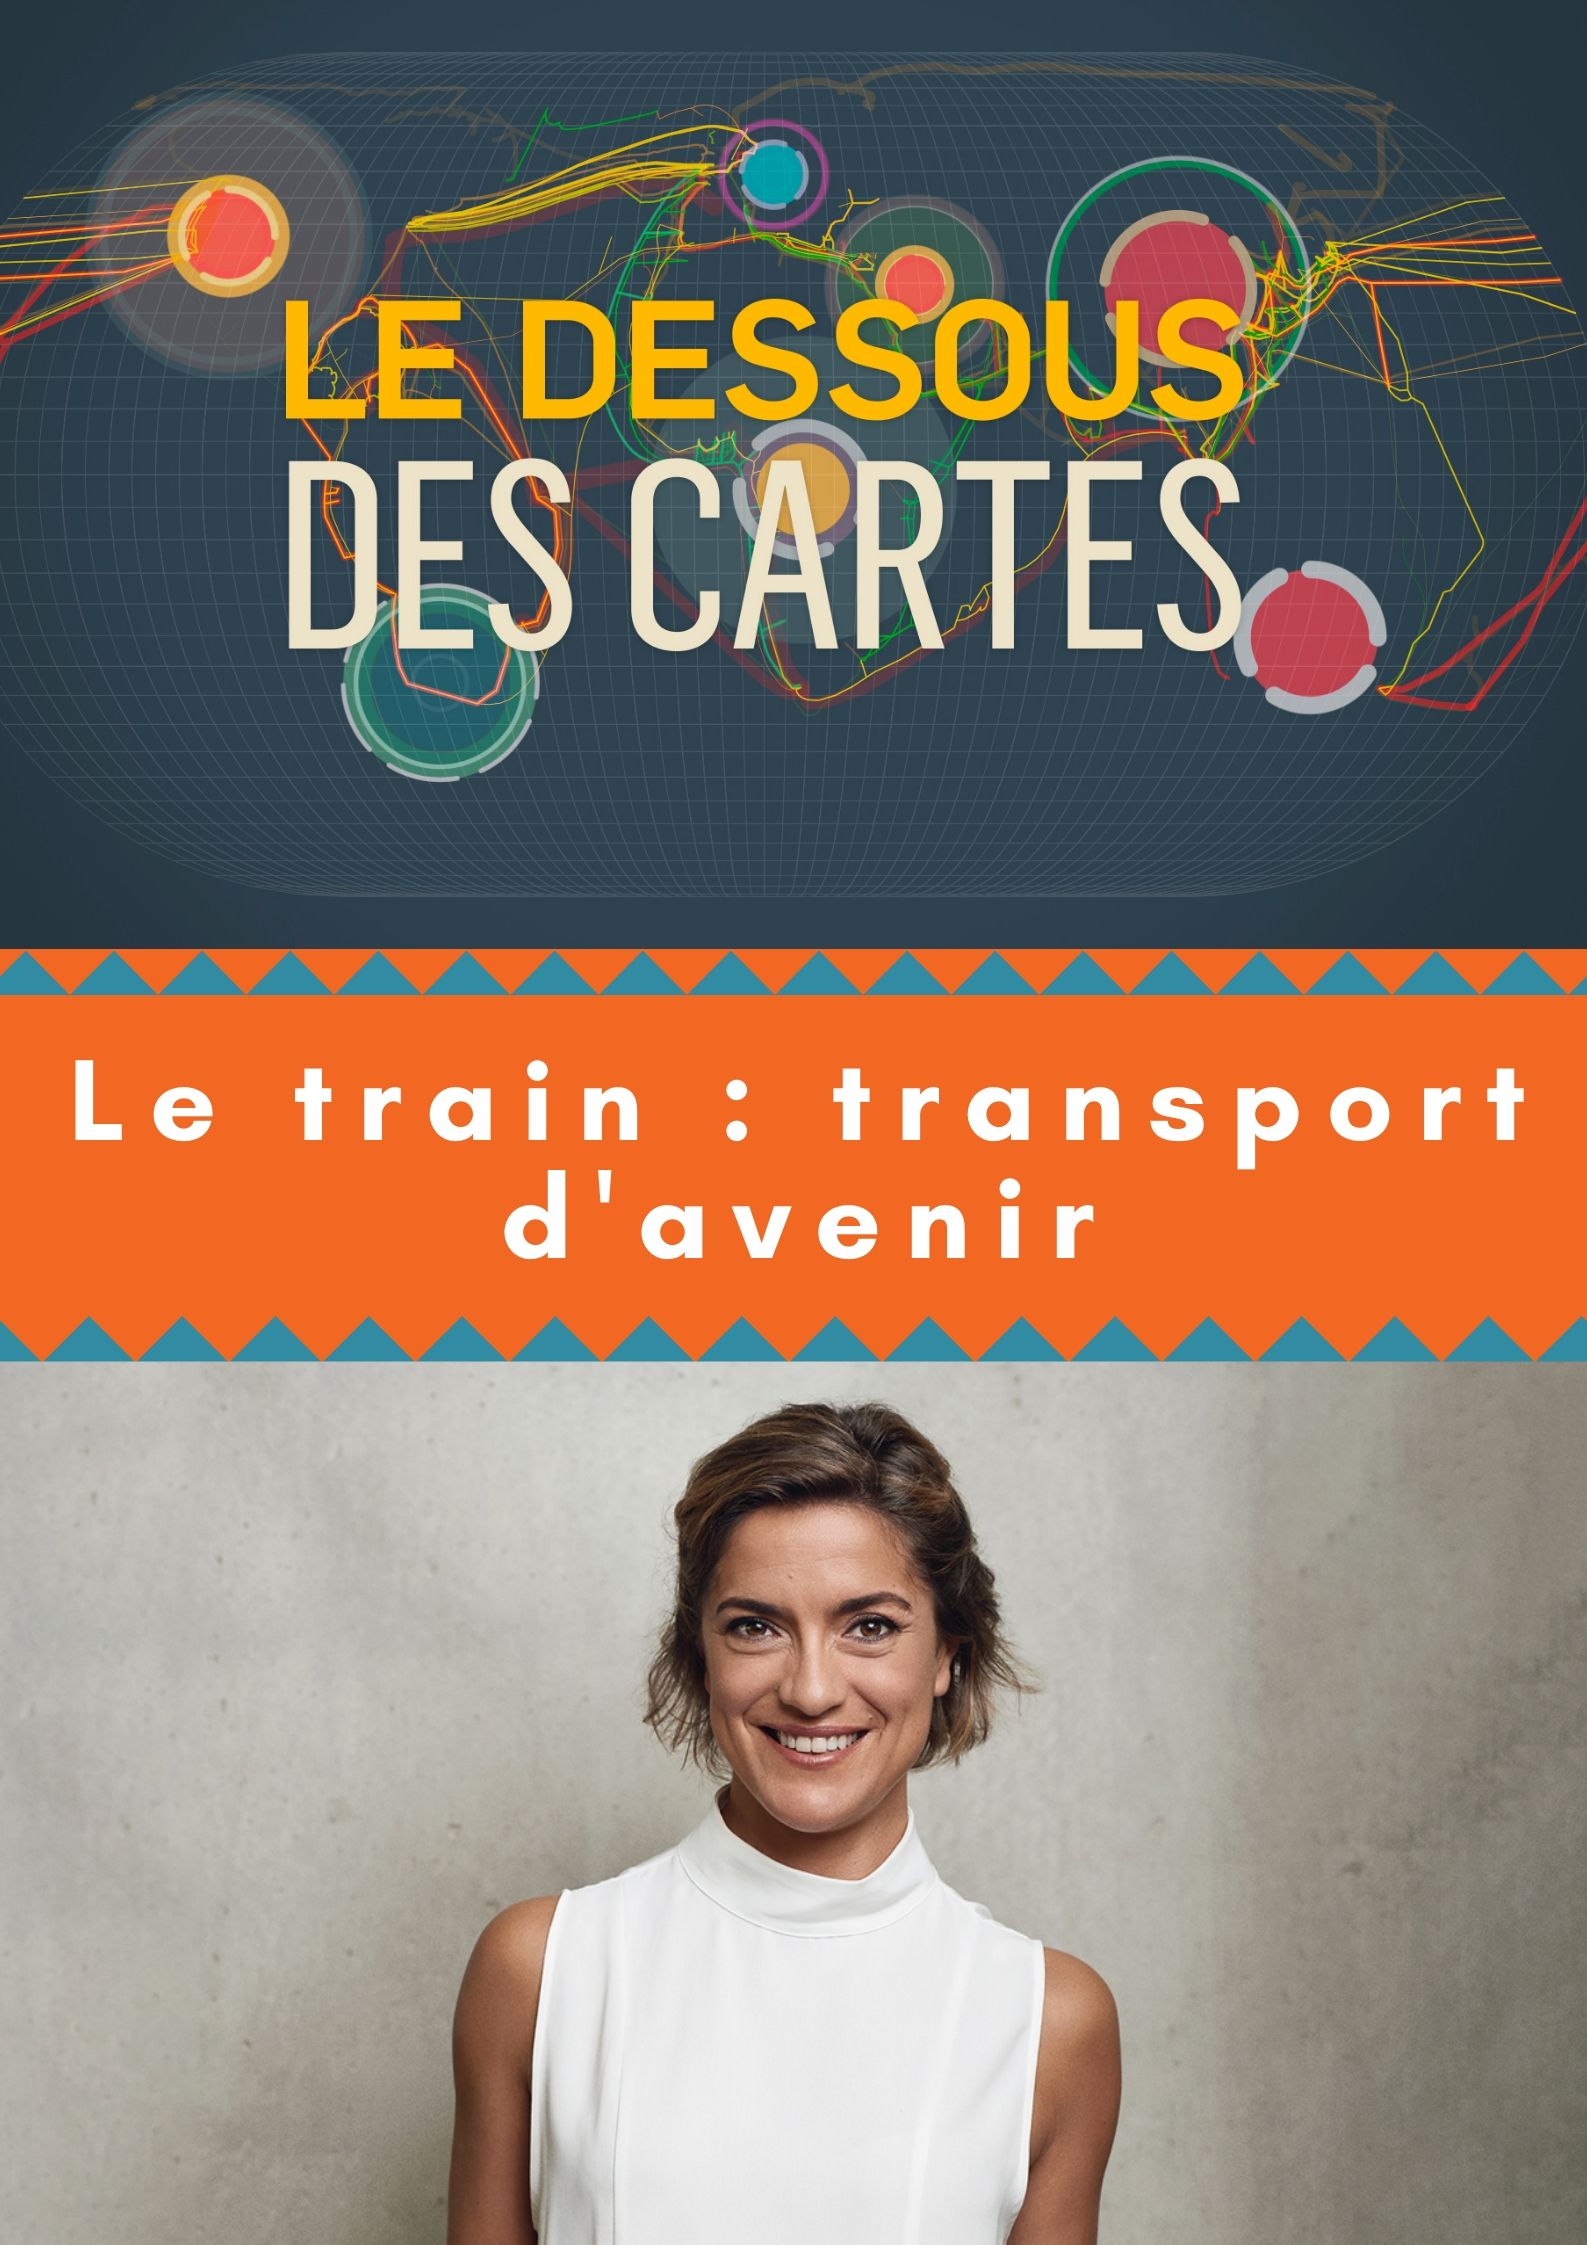 Le Dessous des cartes - Le train : transport d'avenir